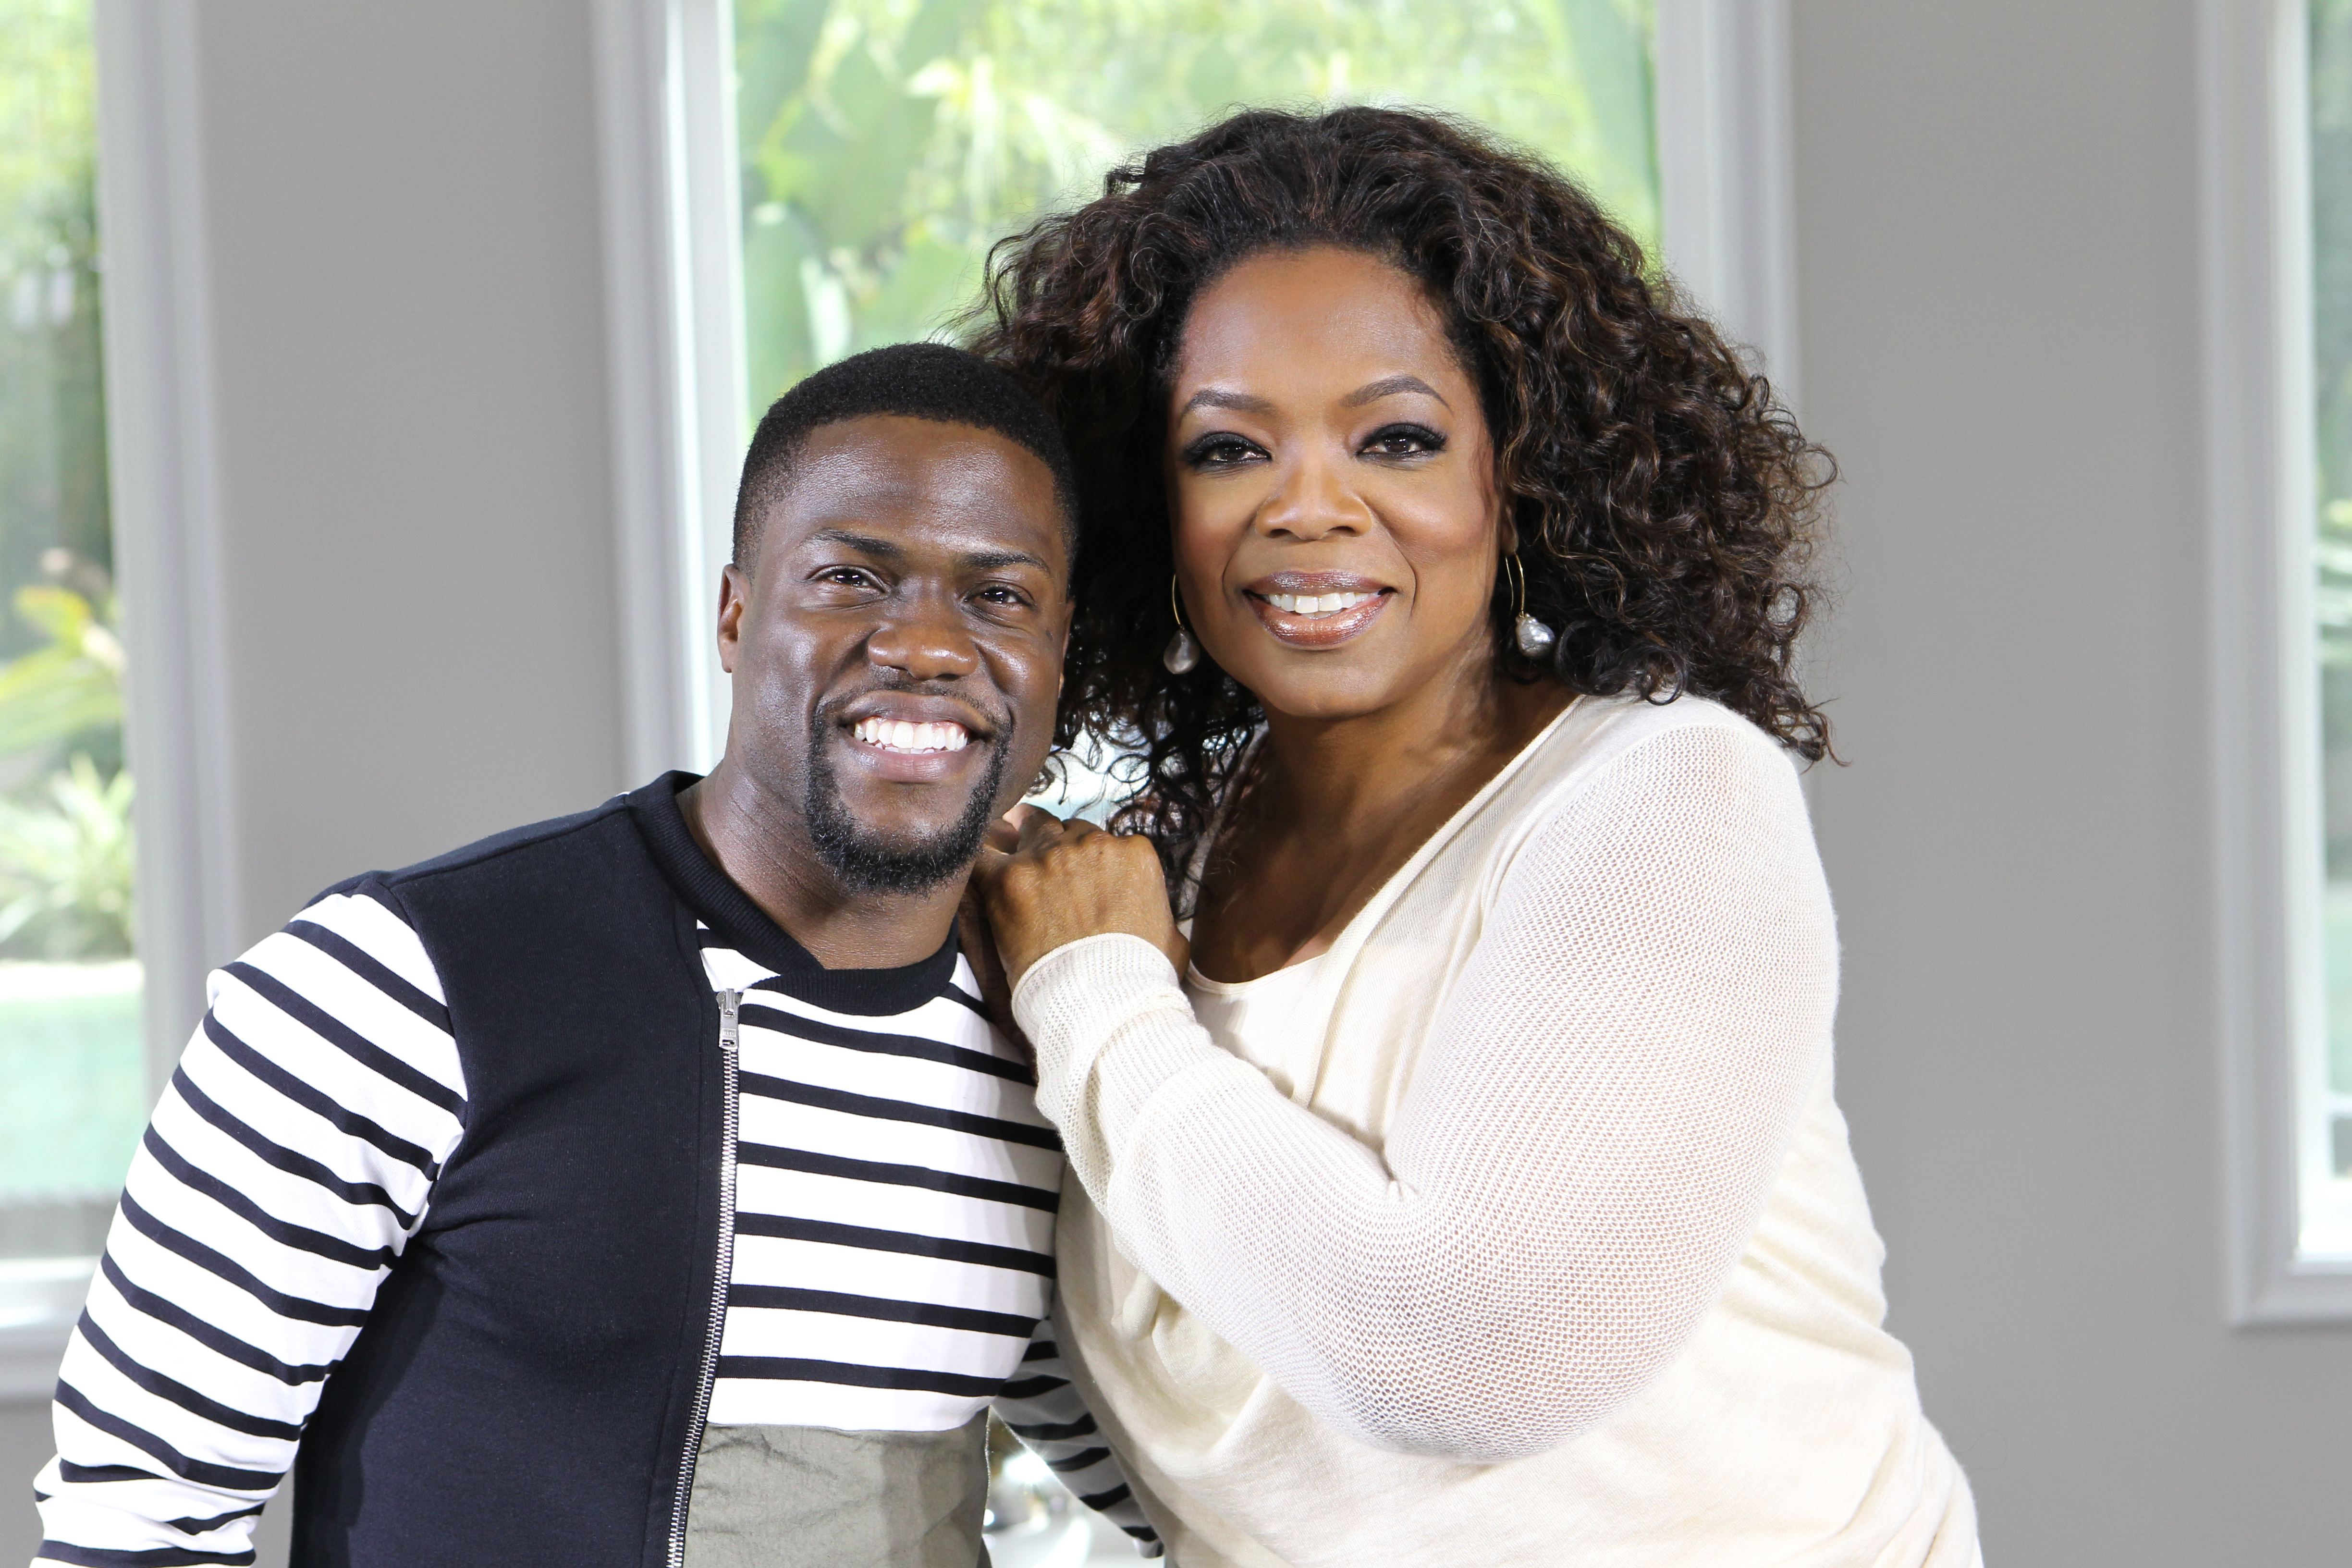 Funnyman Kevin Hart Takes His Business Seriously